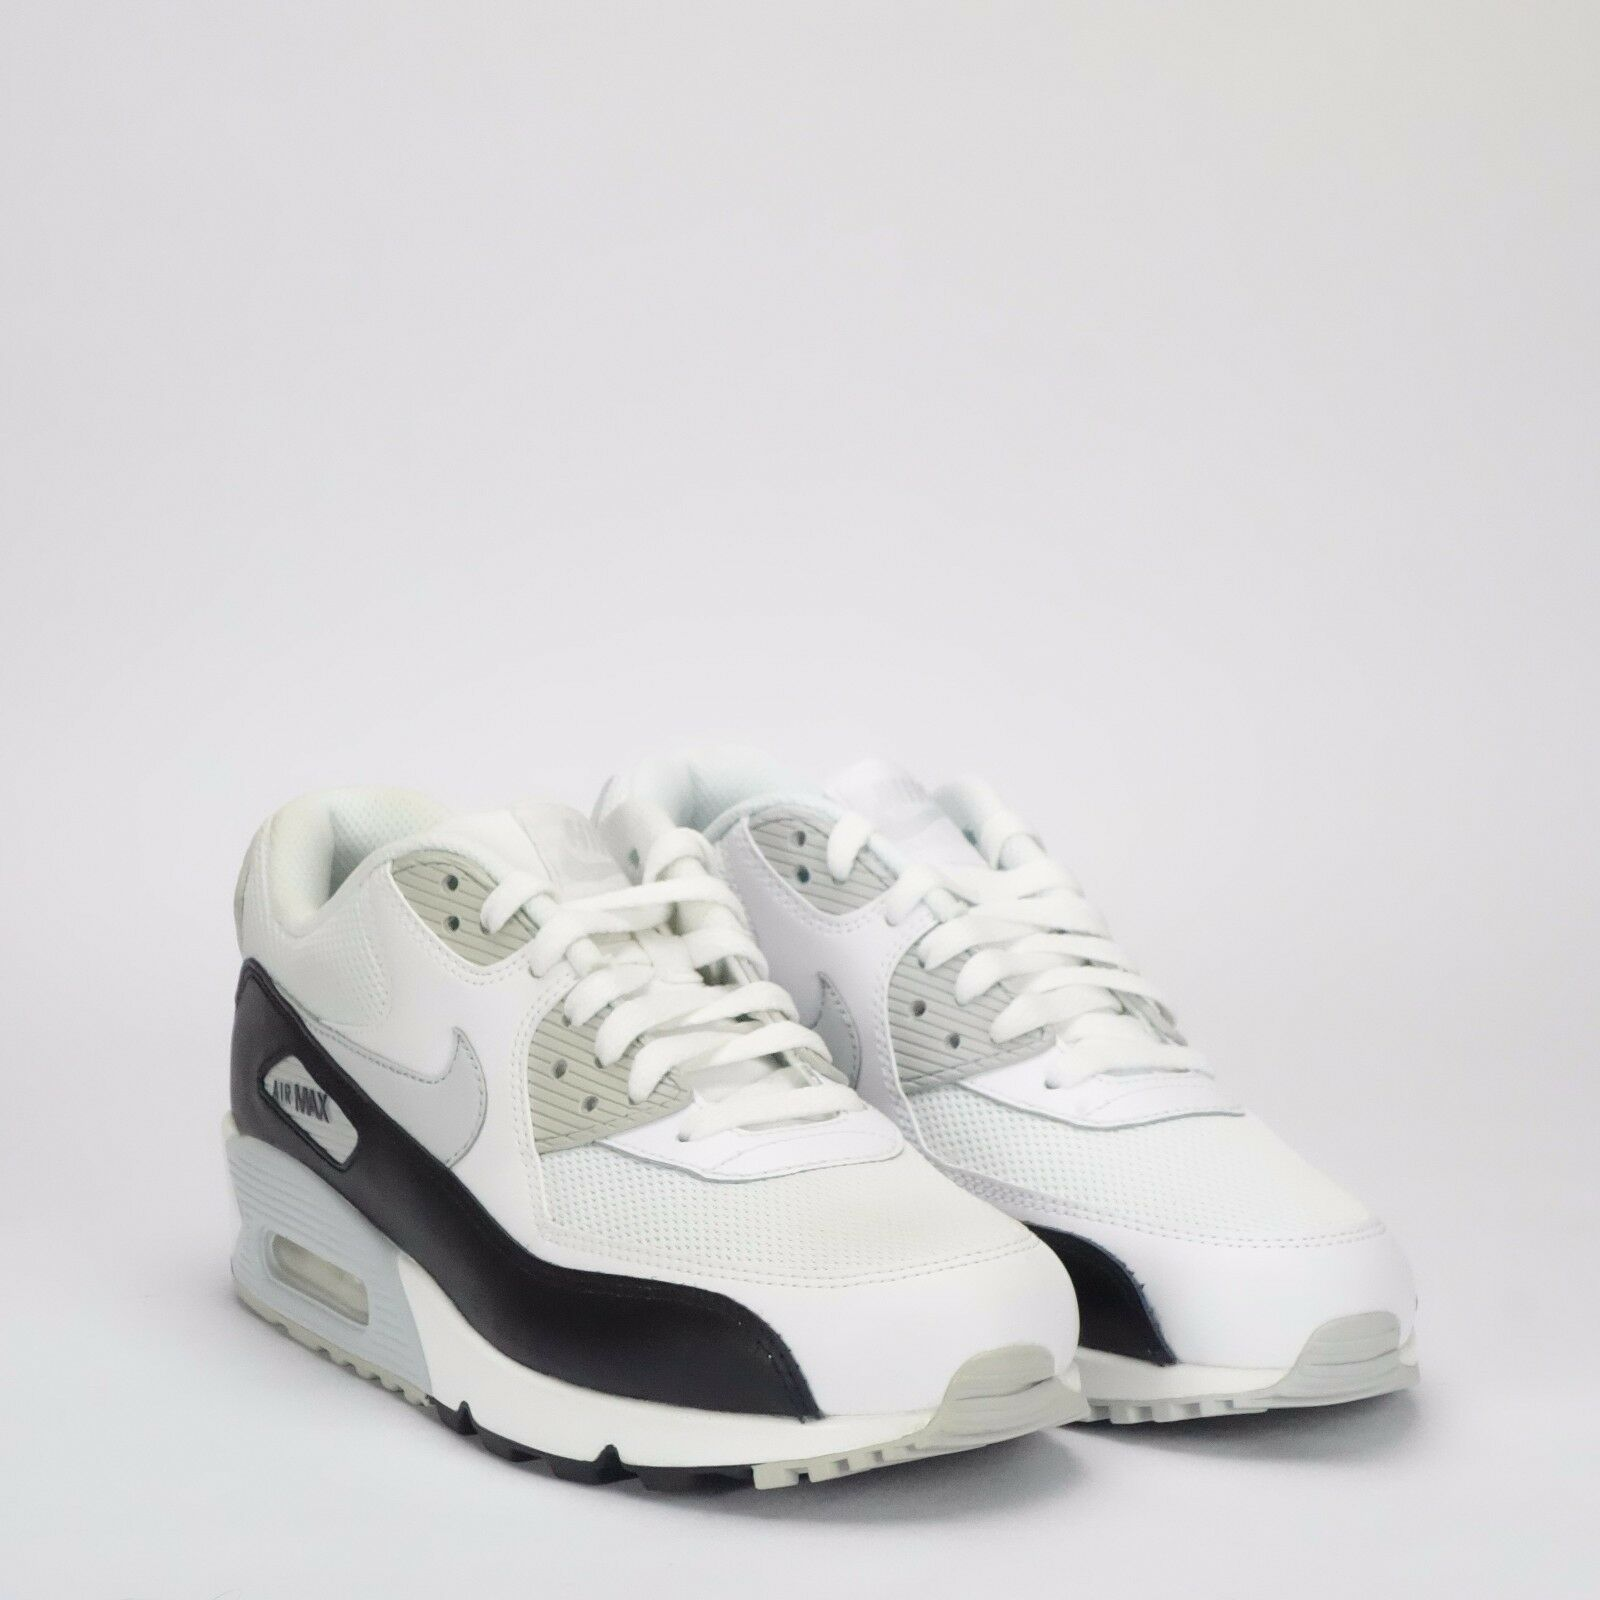 Nike Air Max Essential Blanco/Pure Zapatos  para hombre Blanco/Pure Essential Platinum visualización ex f3c71c